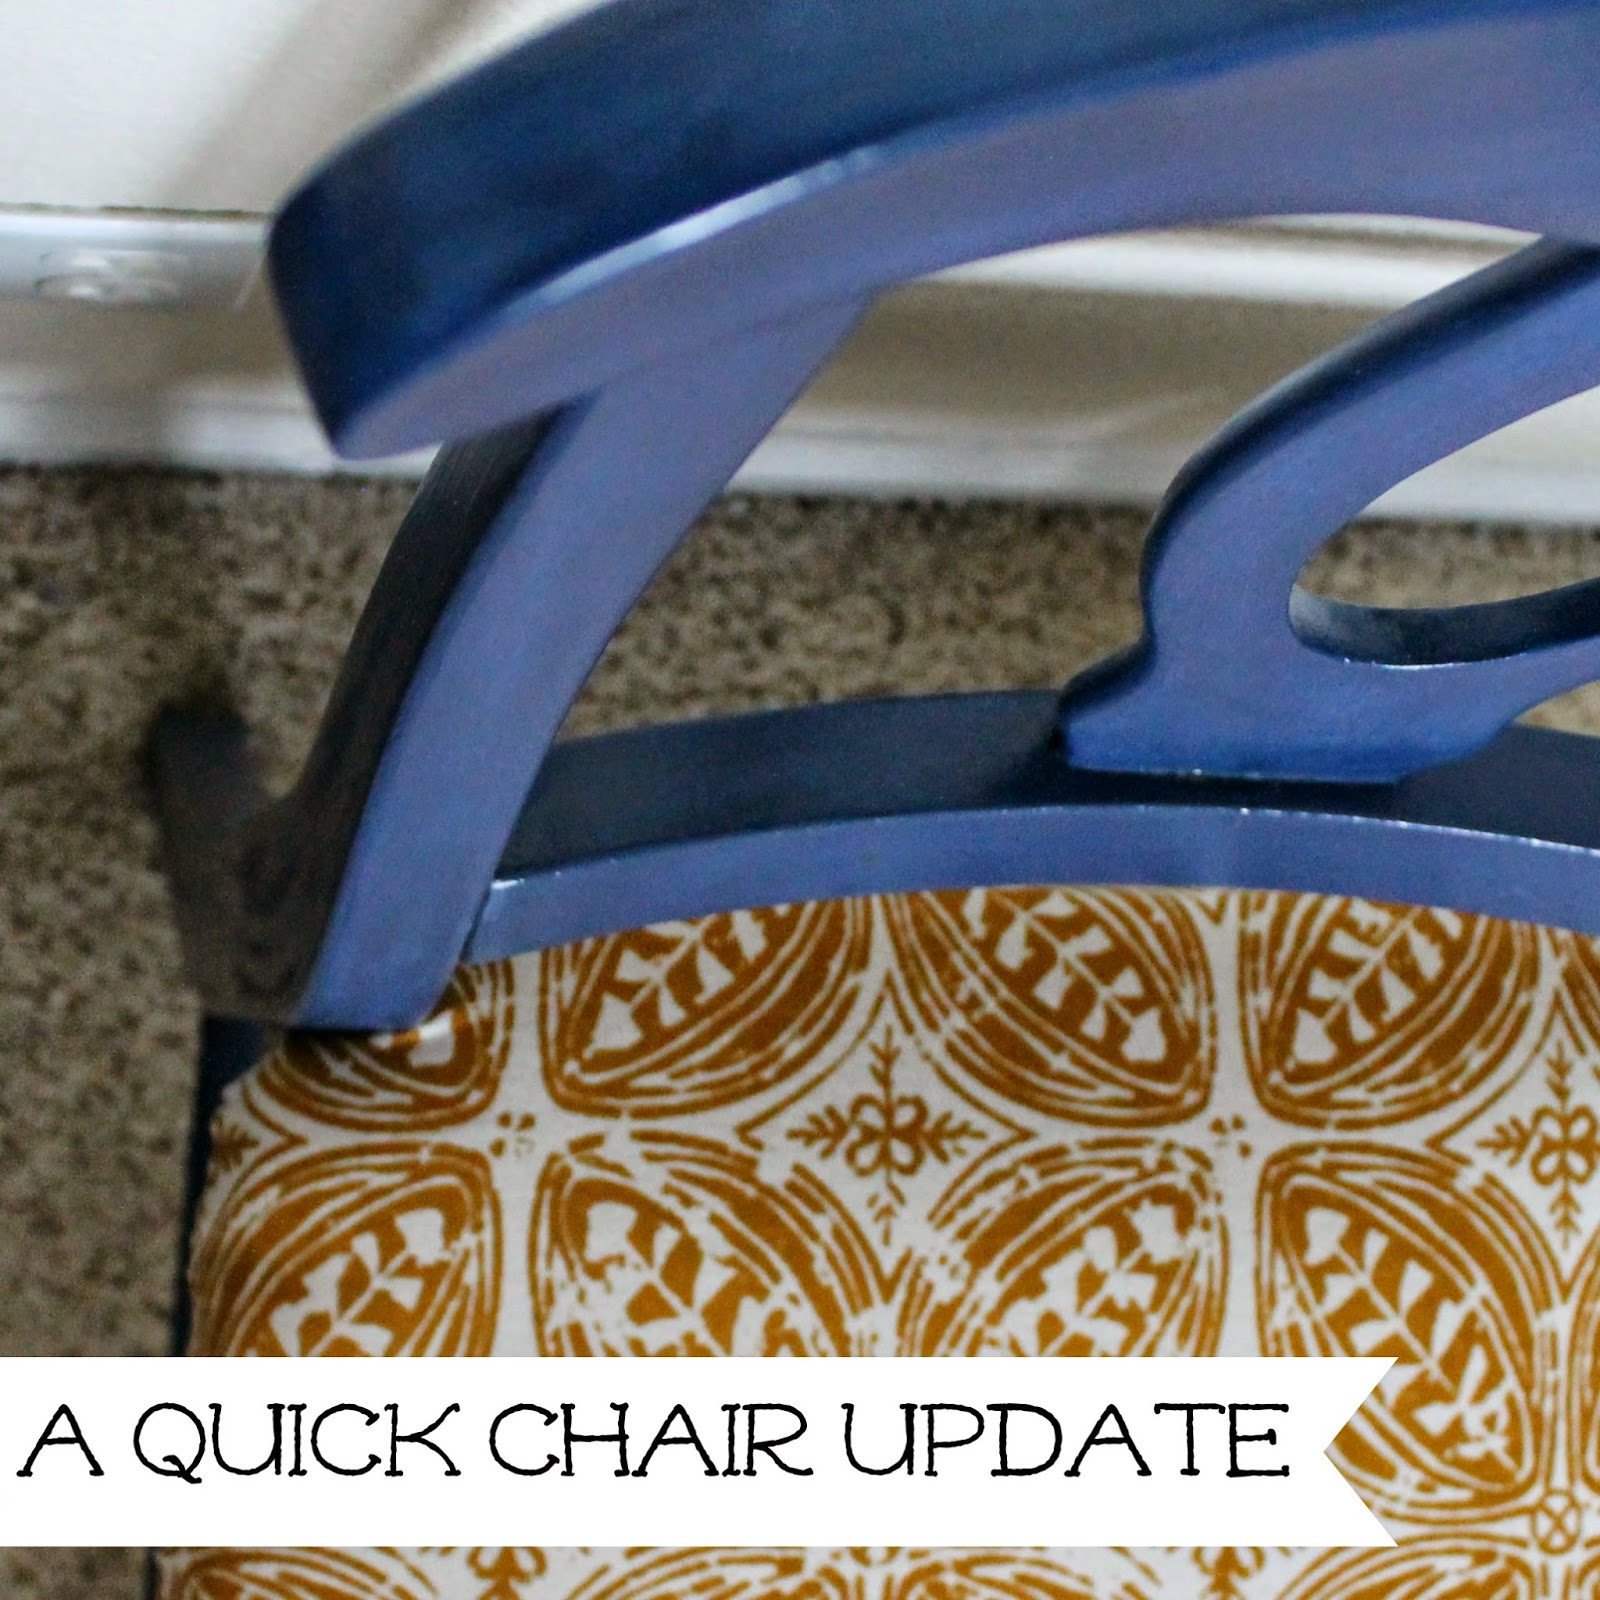 http://wonderfullymadebyleslie.blogspot.com/2014/04/chair-update-quick-fix.html